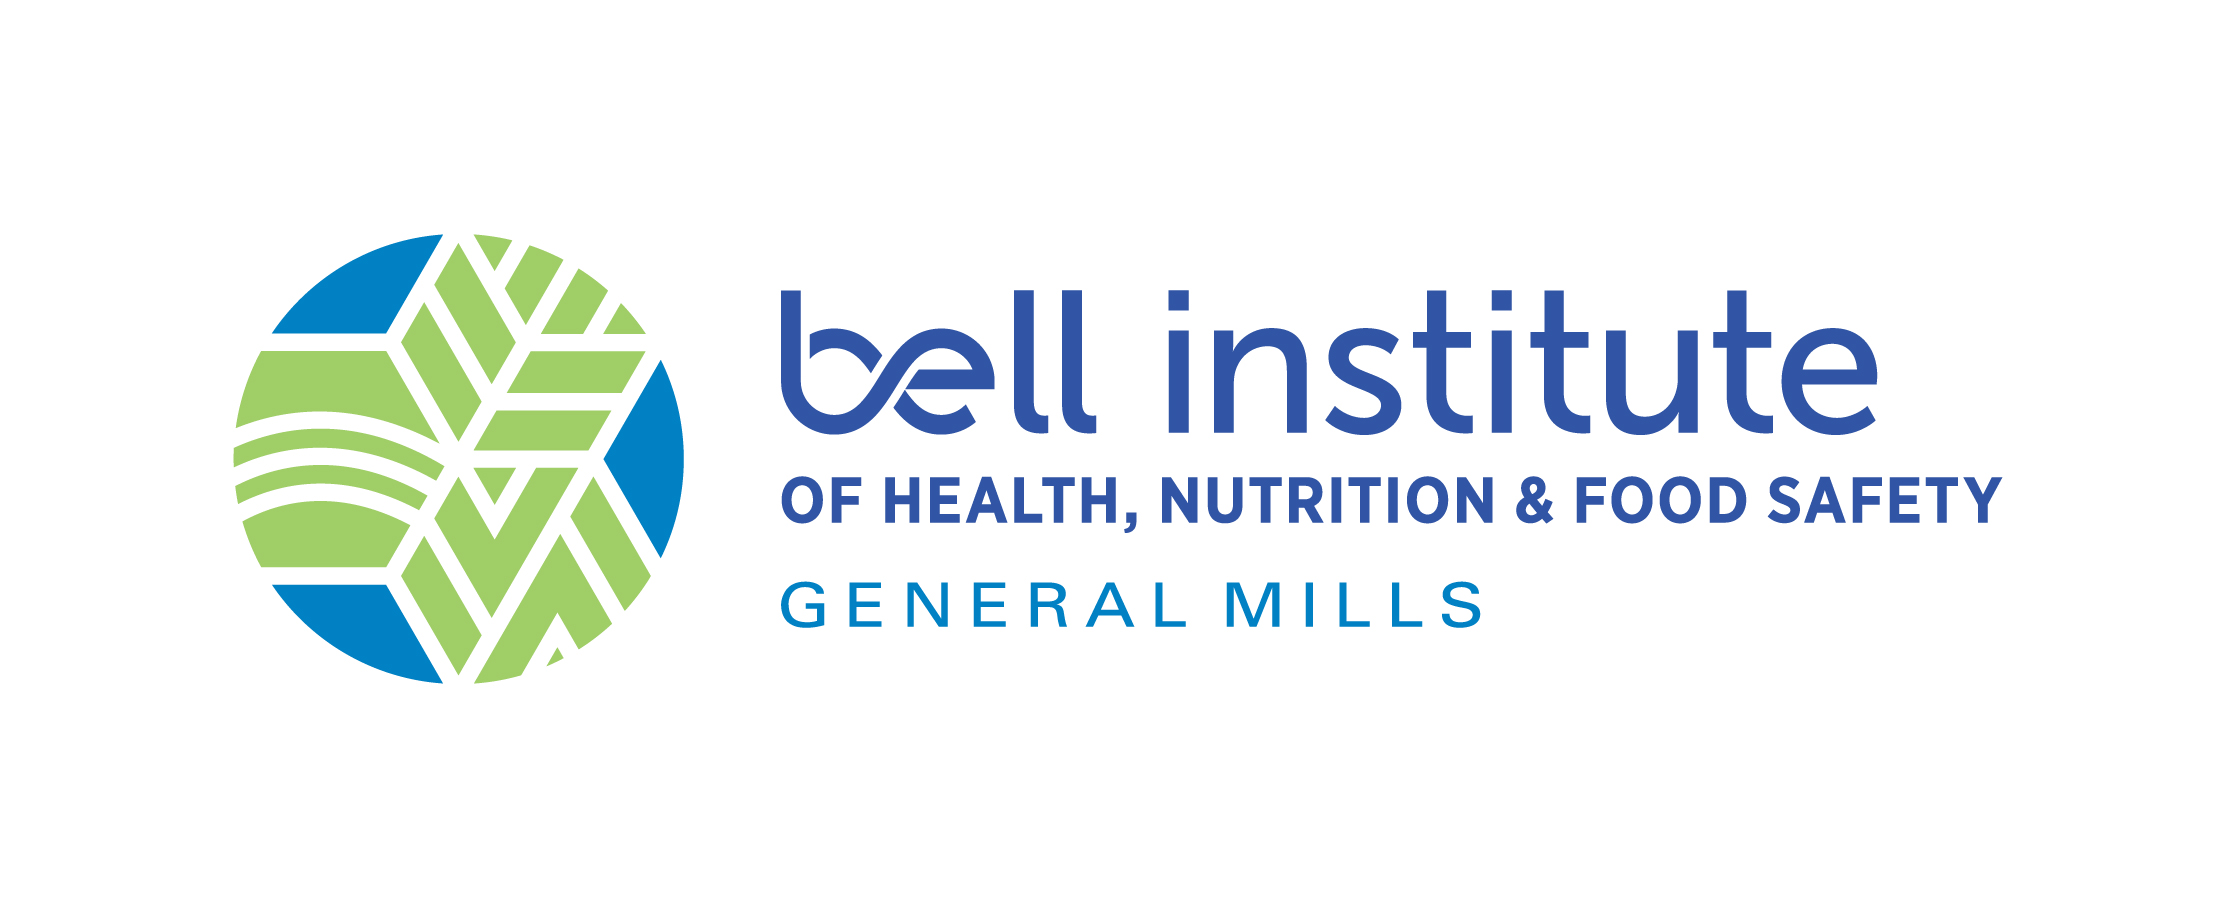 General Mills Bell Institute of Health, Nutrition & Food Safety